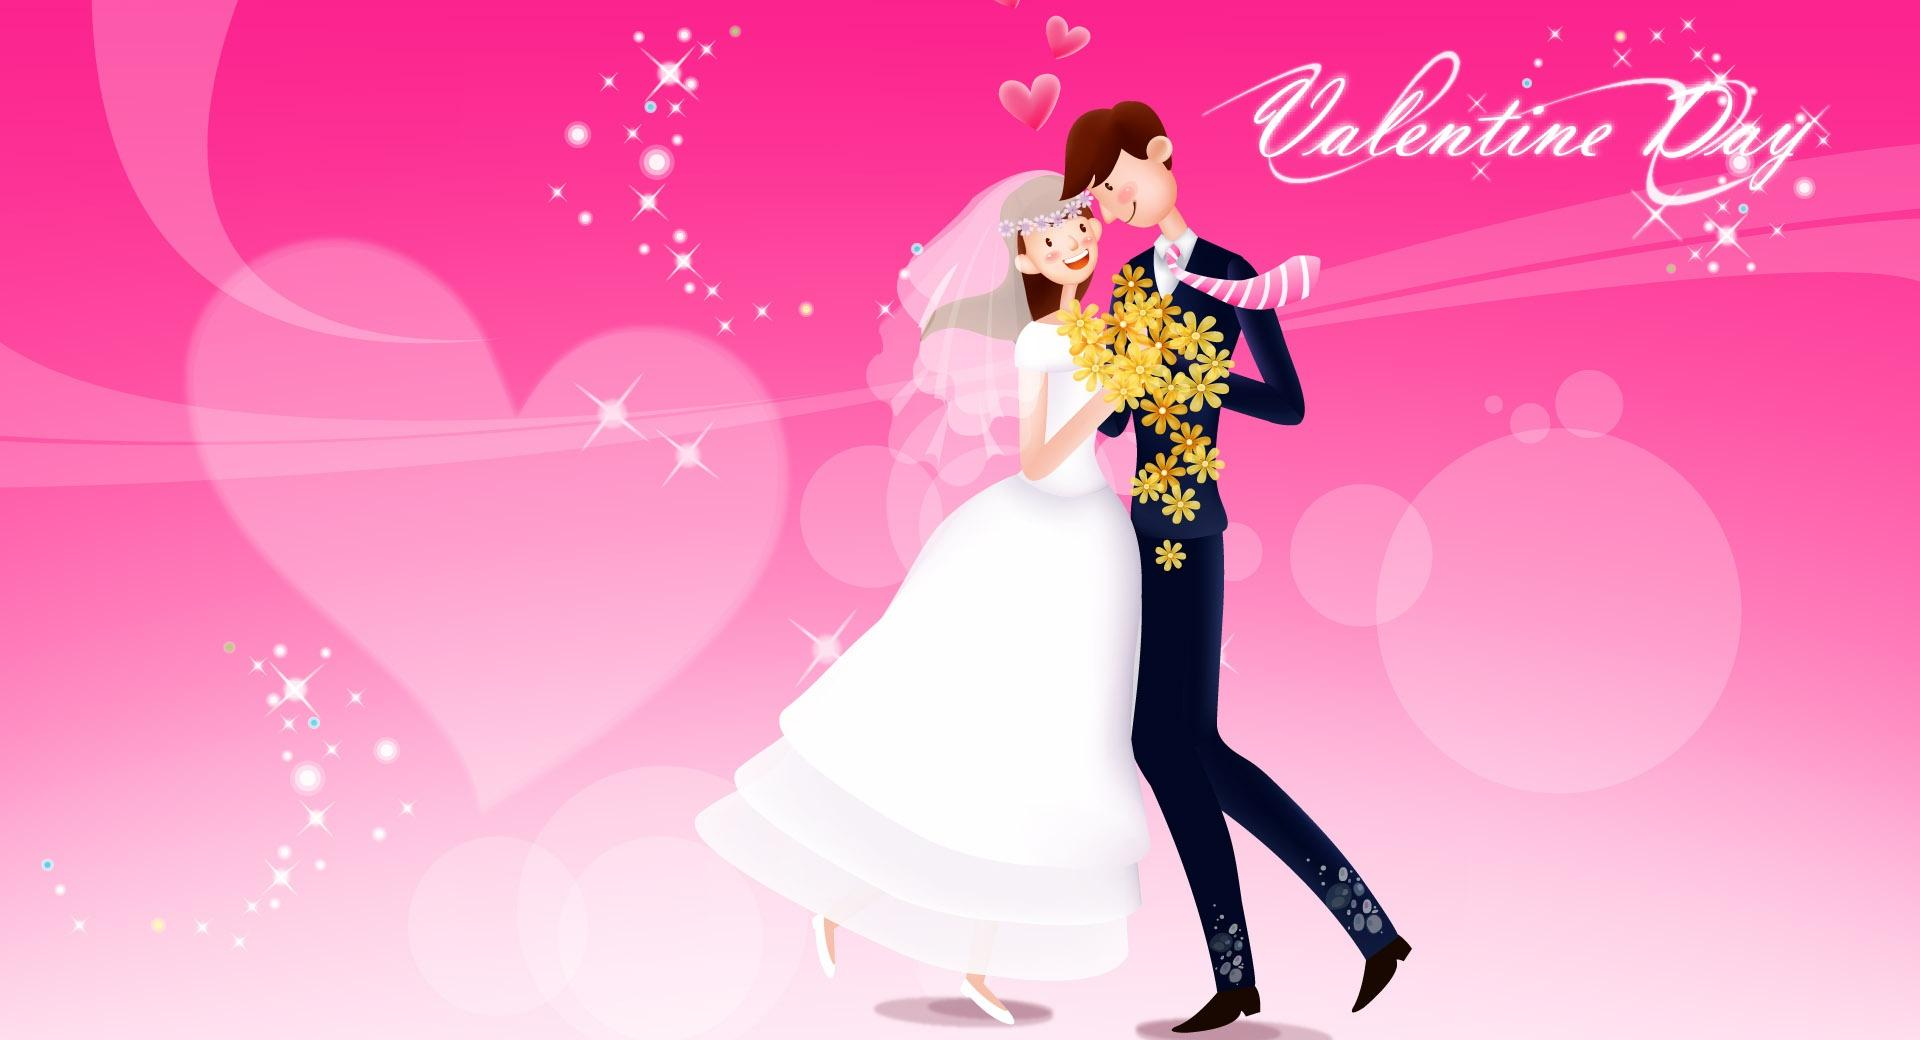 Valentines Day Wedding wallpapers HD quality